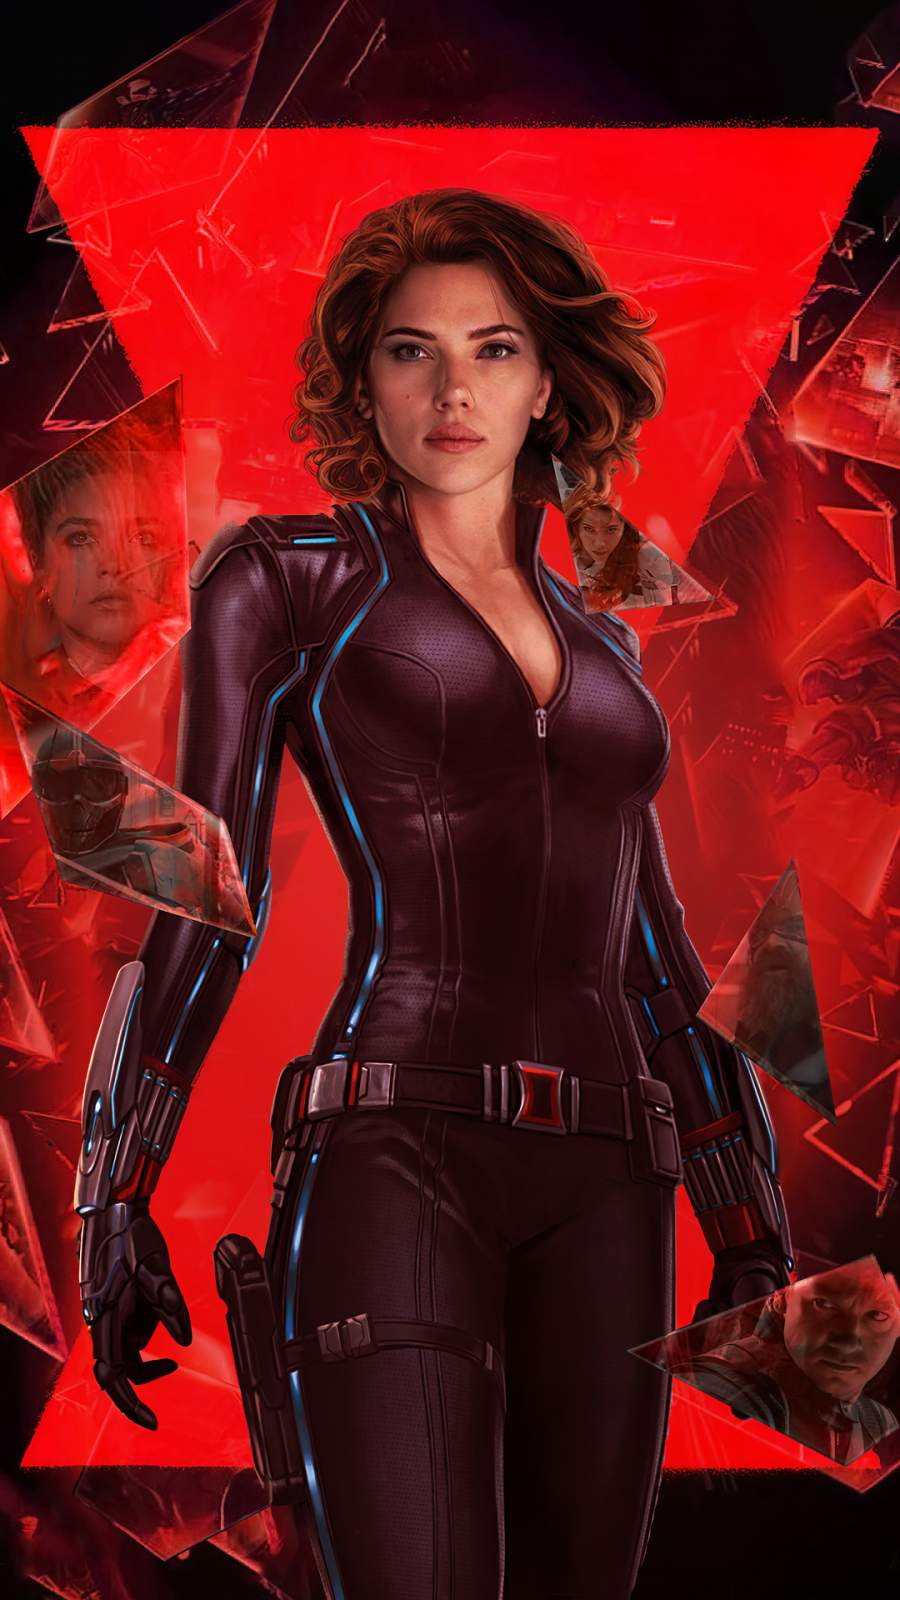 Black Widow Movie Art iPhone Wallpaper 1